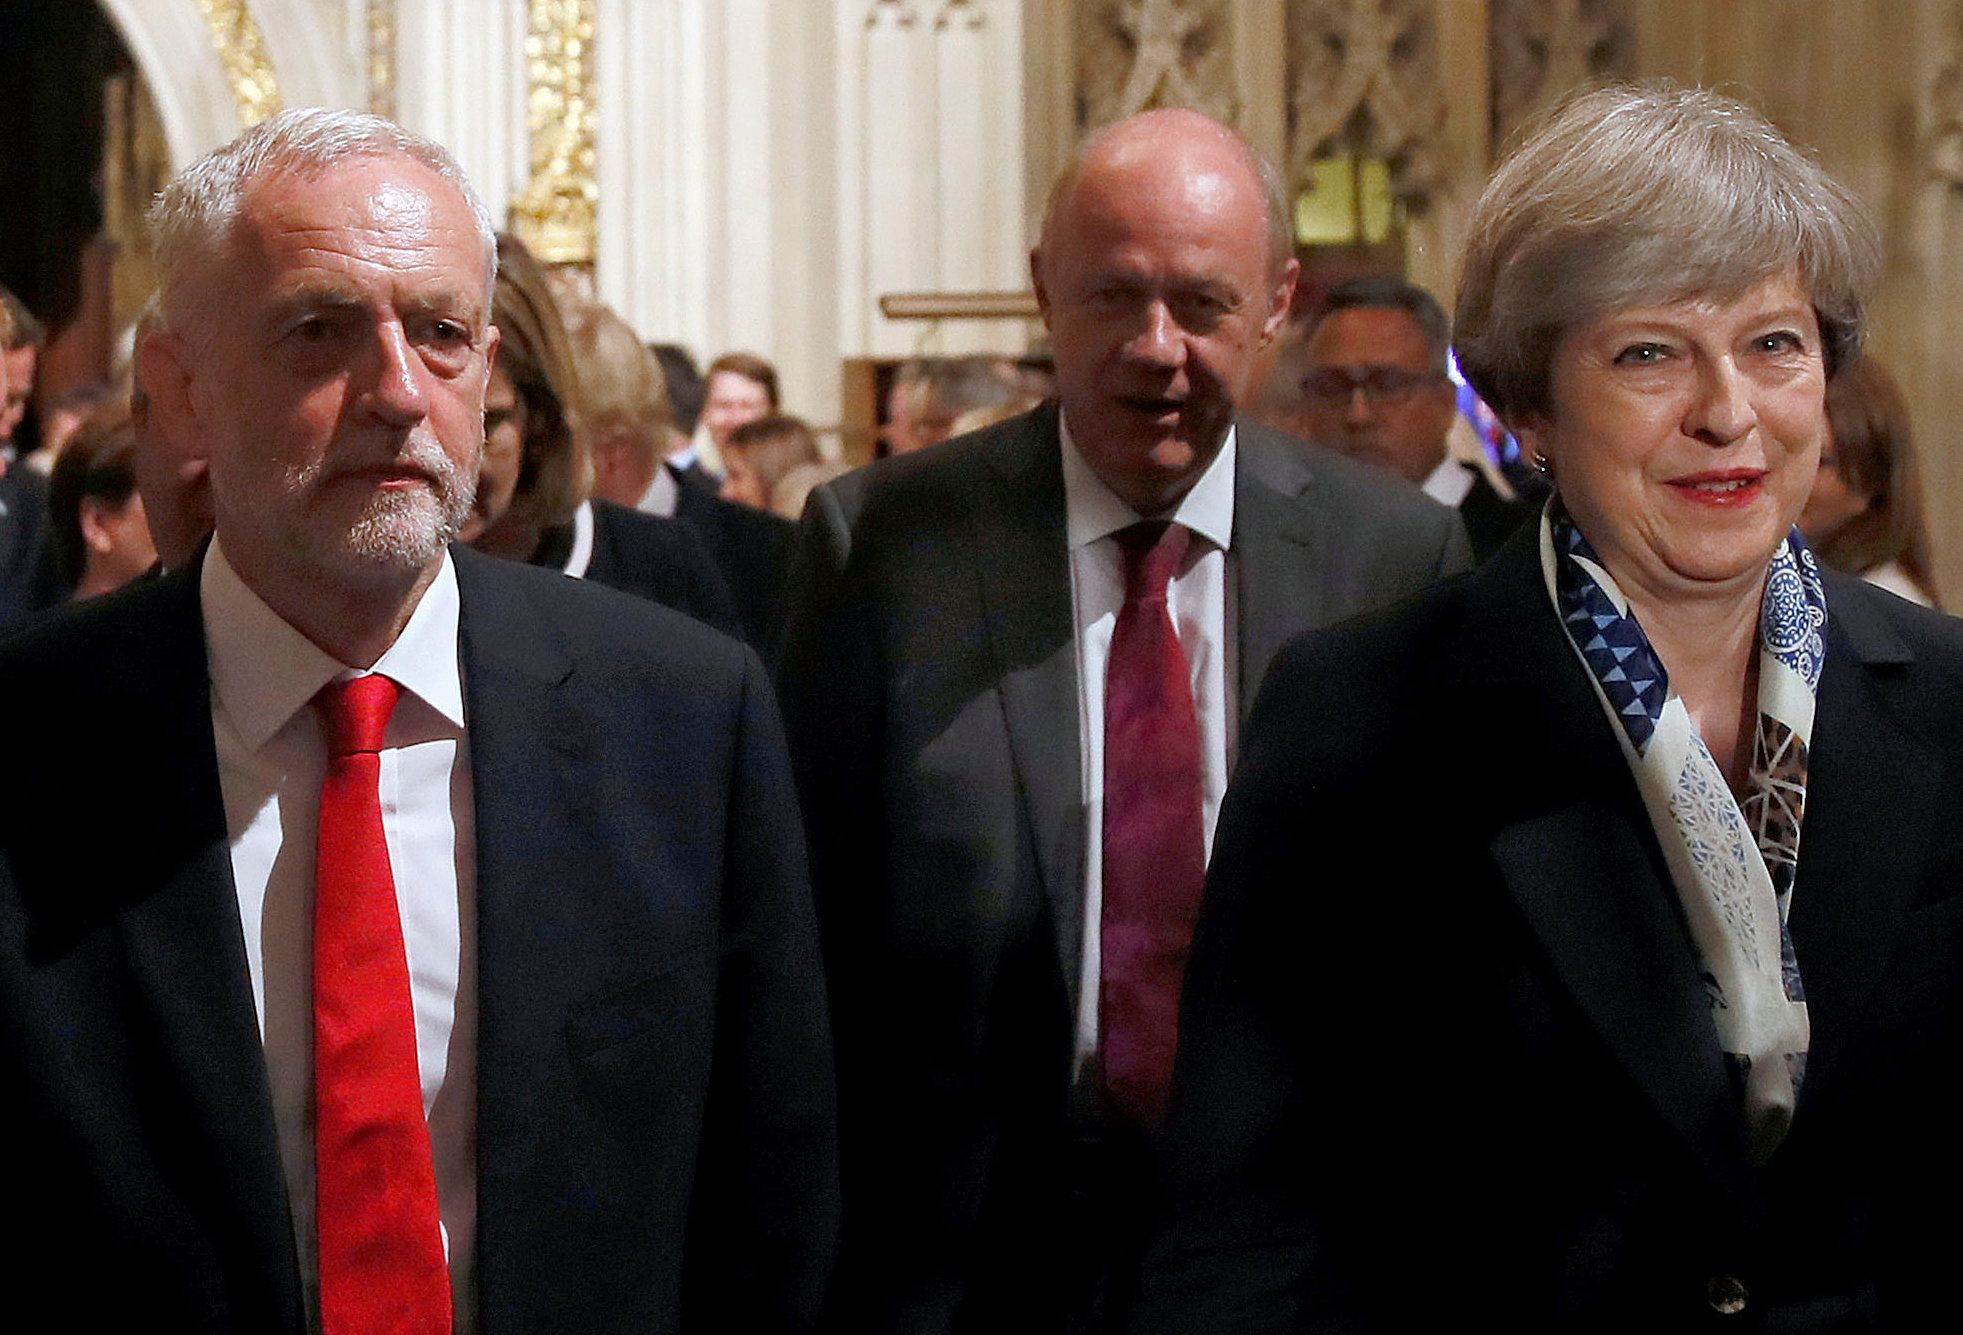 May And Corbyn's Small Talk Was The Most Awkward Thing We've Seen In A Long